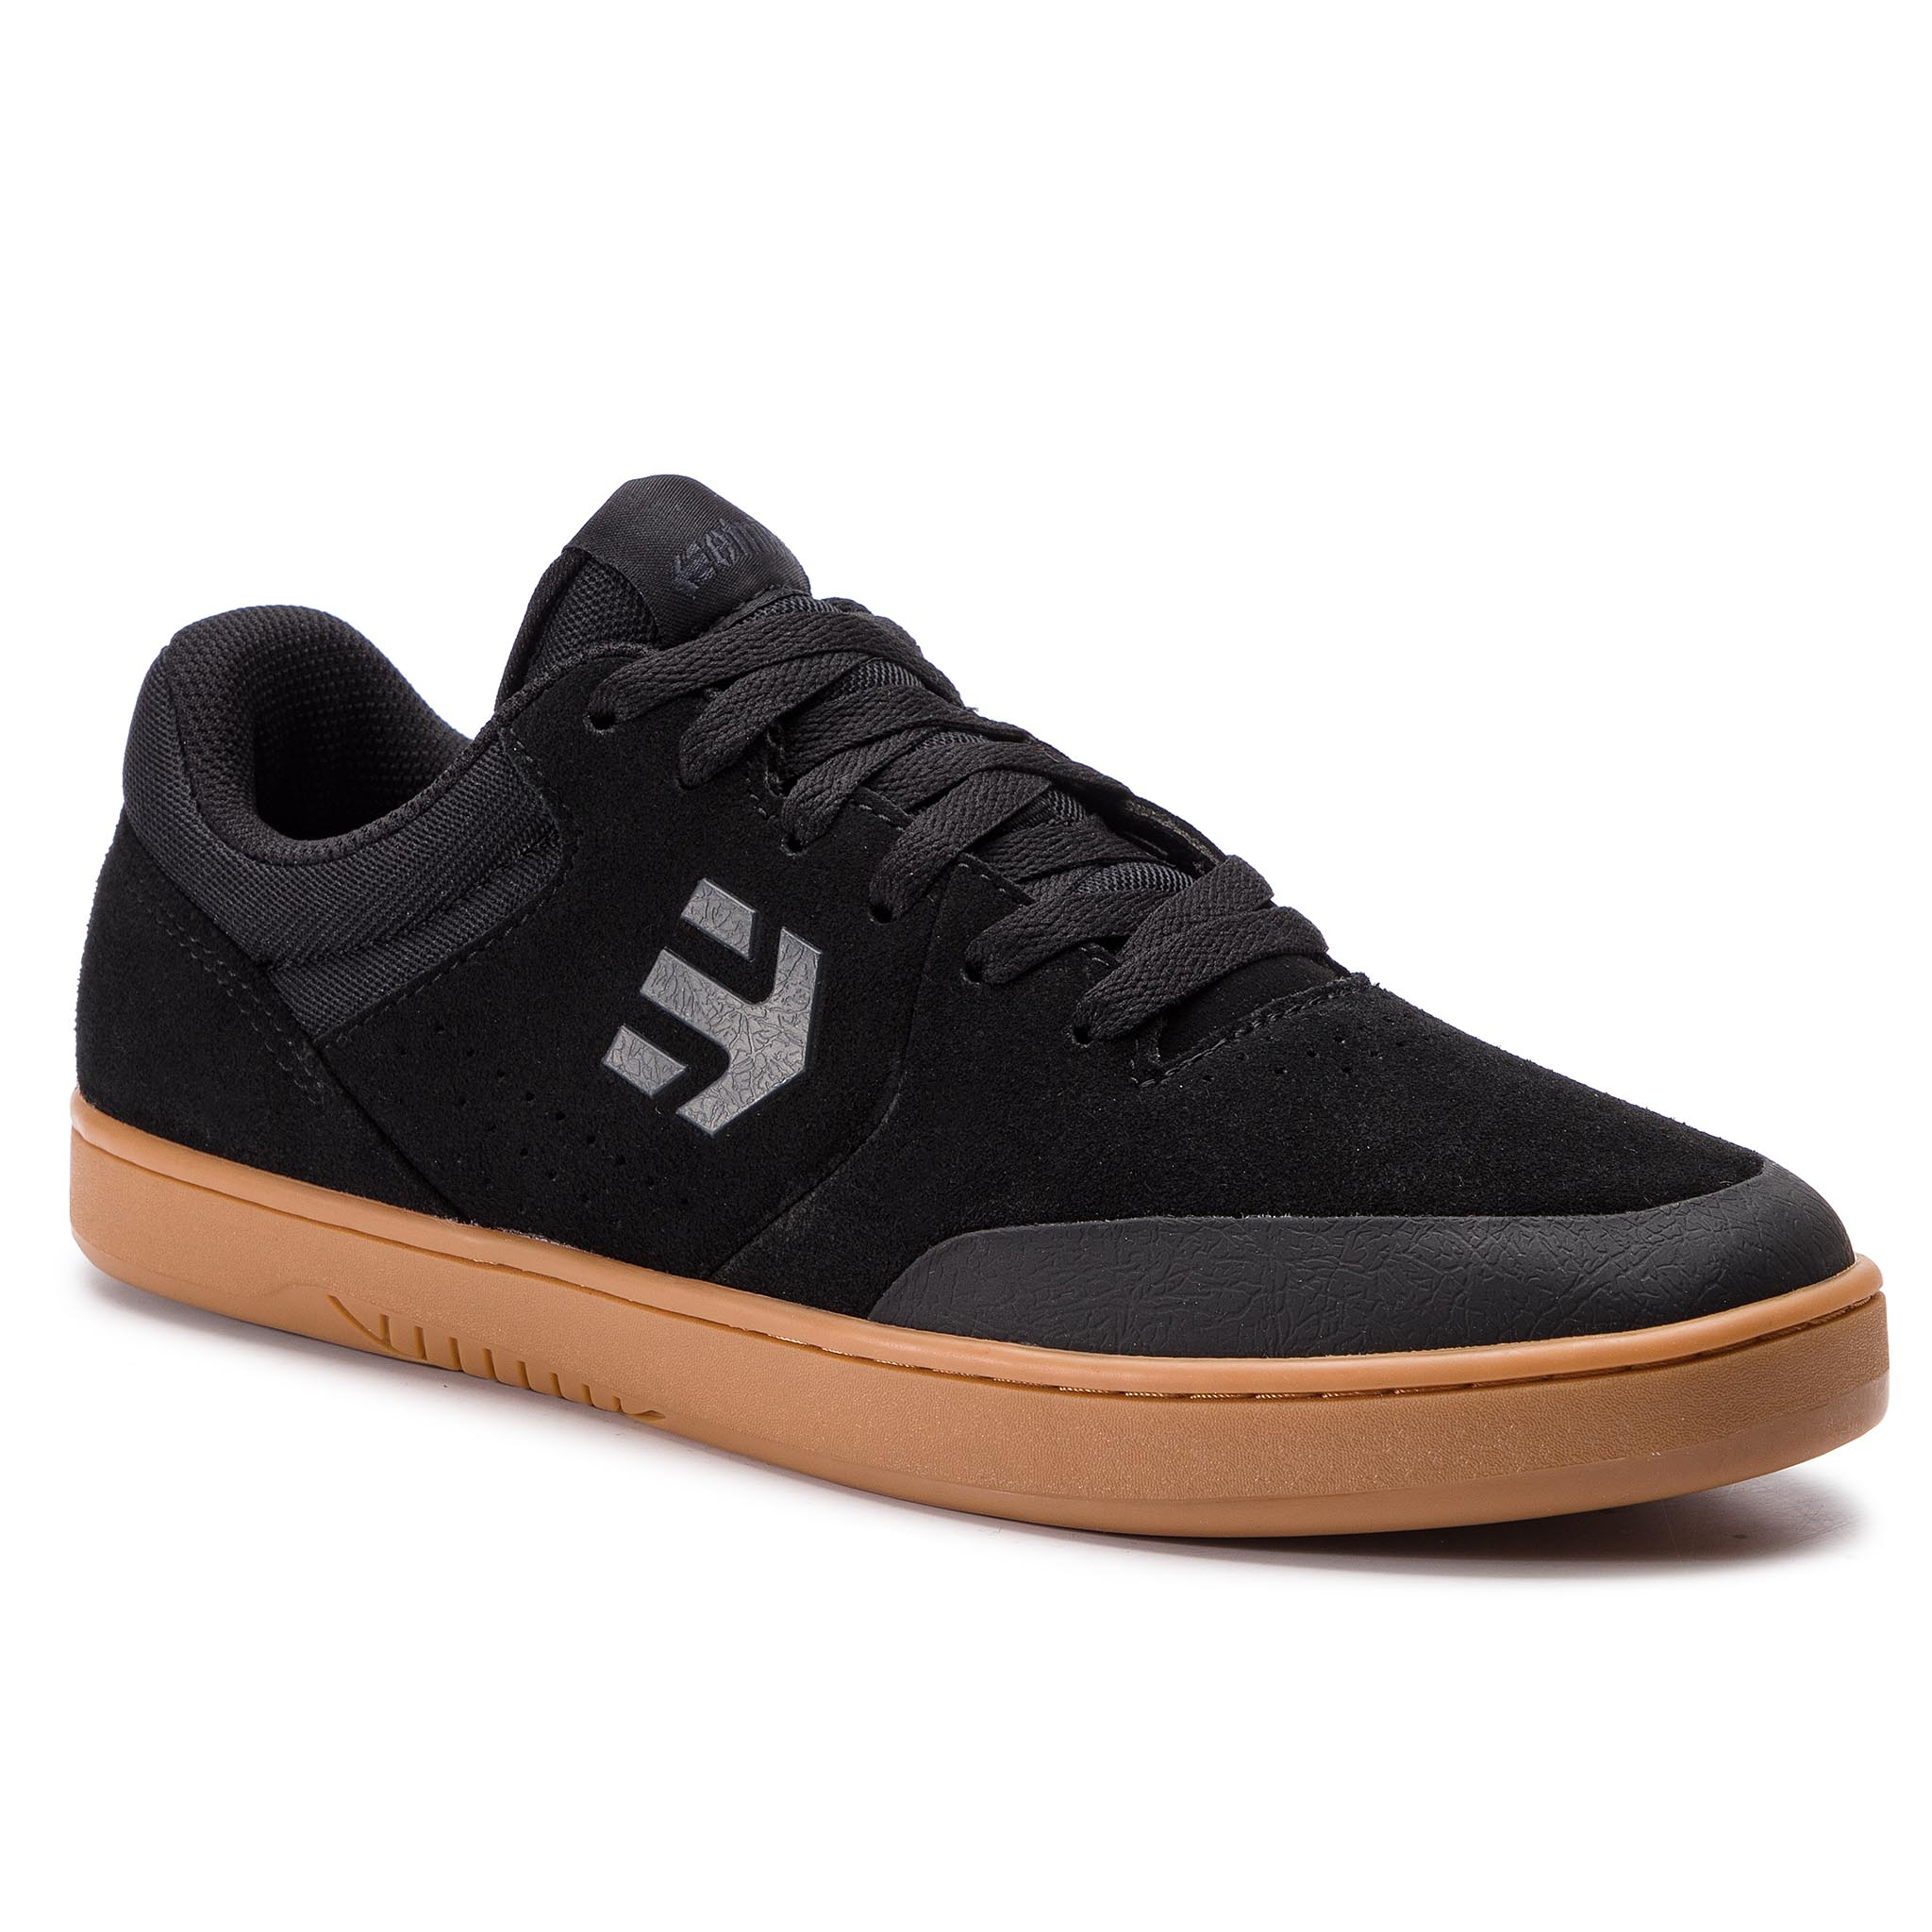 Sneakers ETNIES - Marana 4101000403 Black/Dark Grey/Gum 566